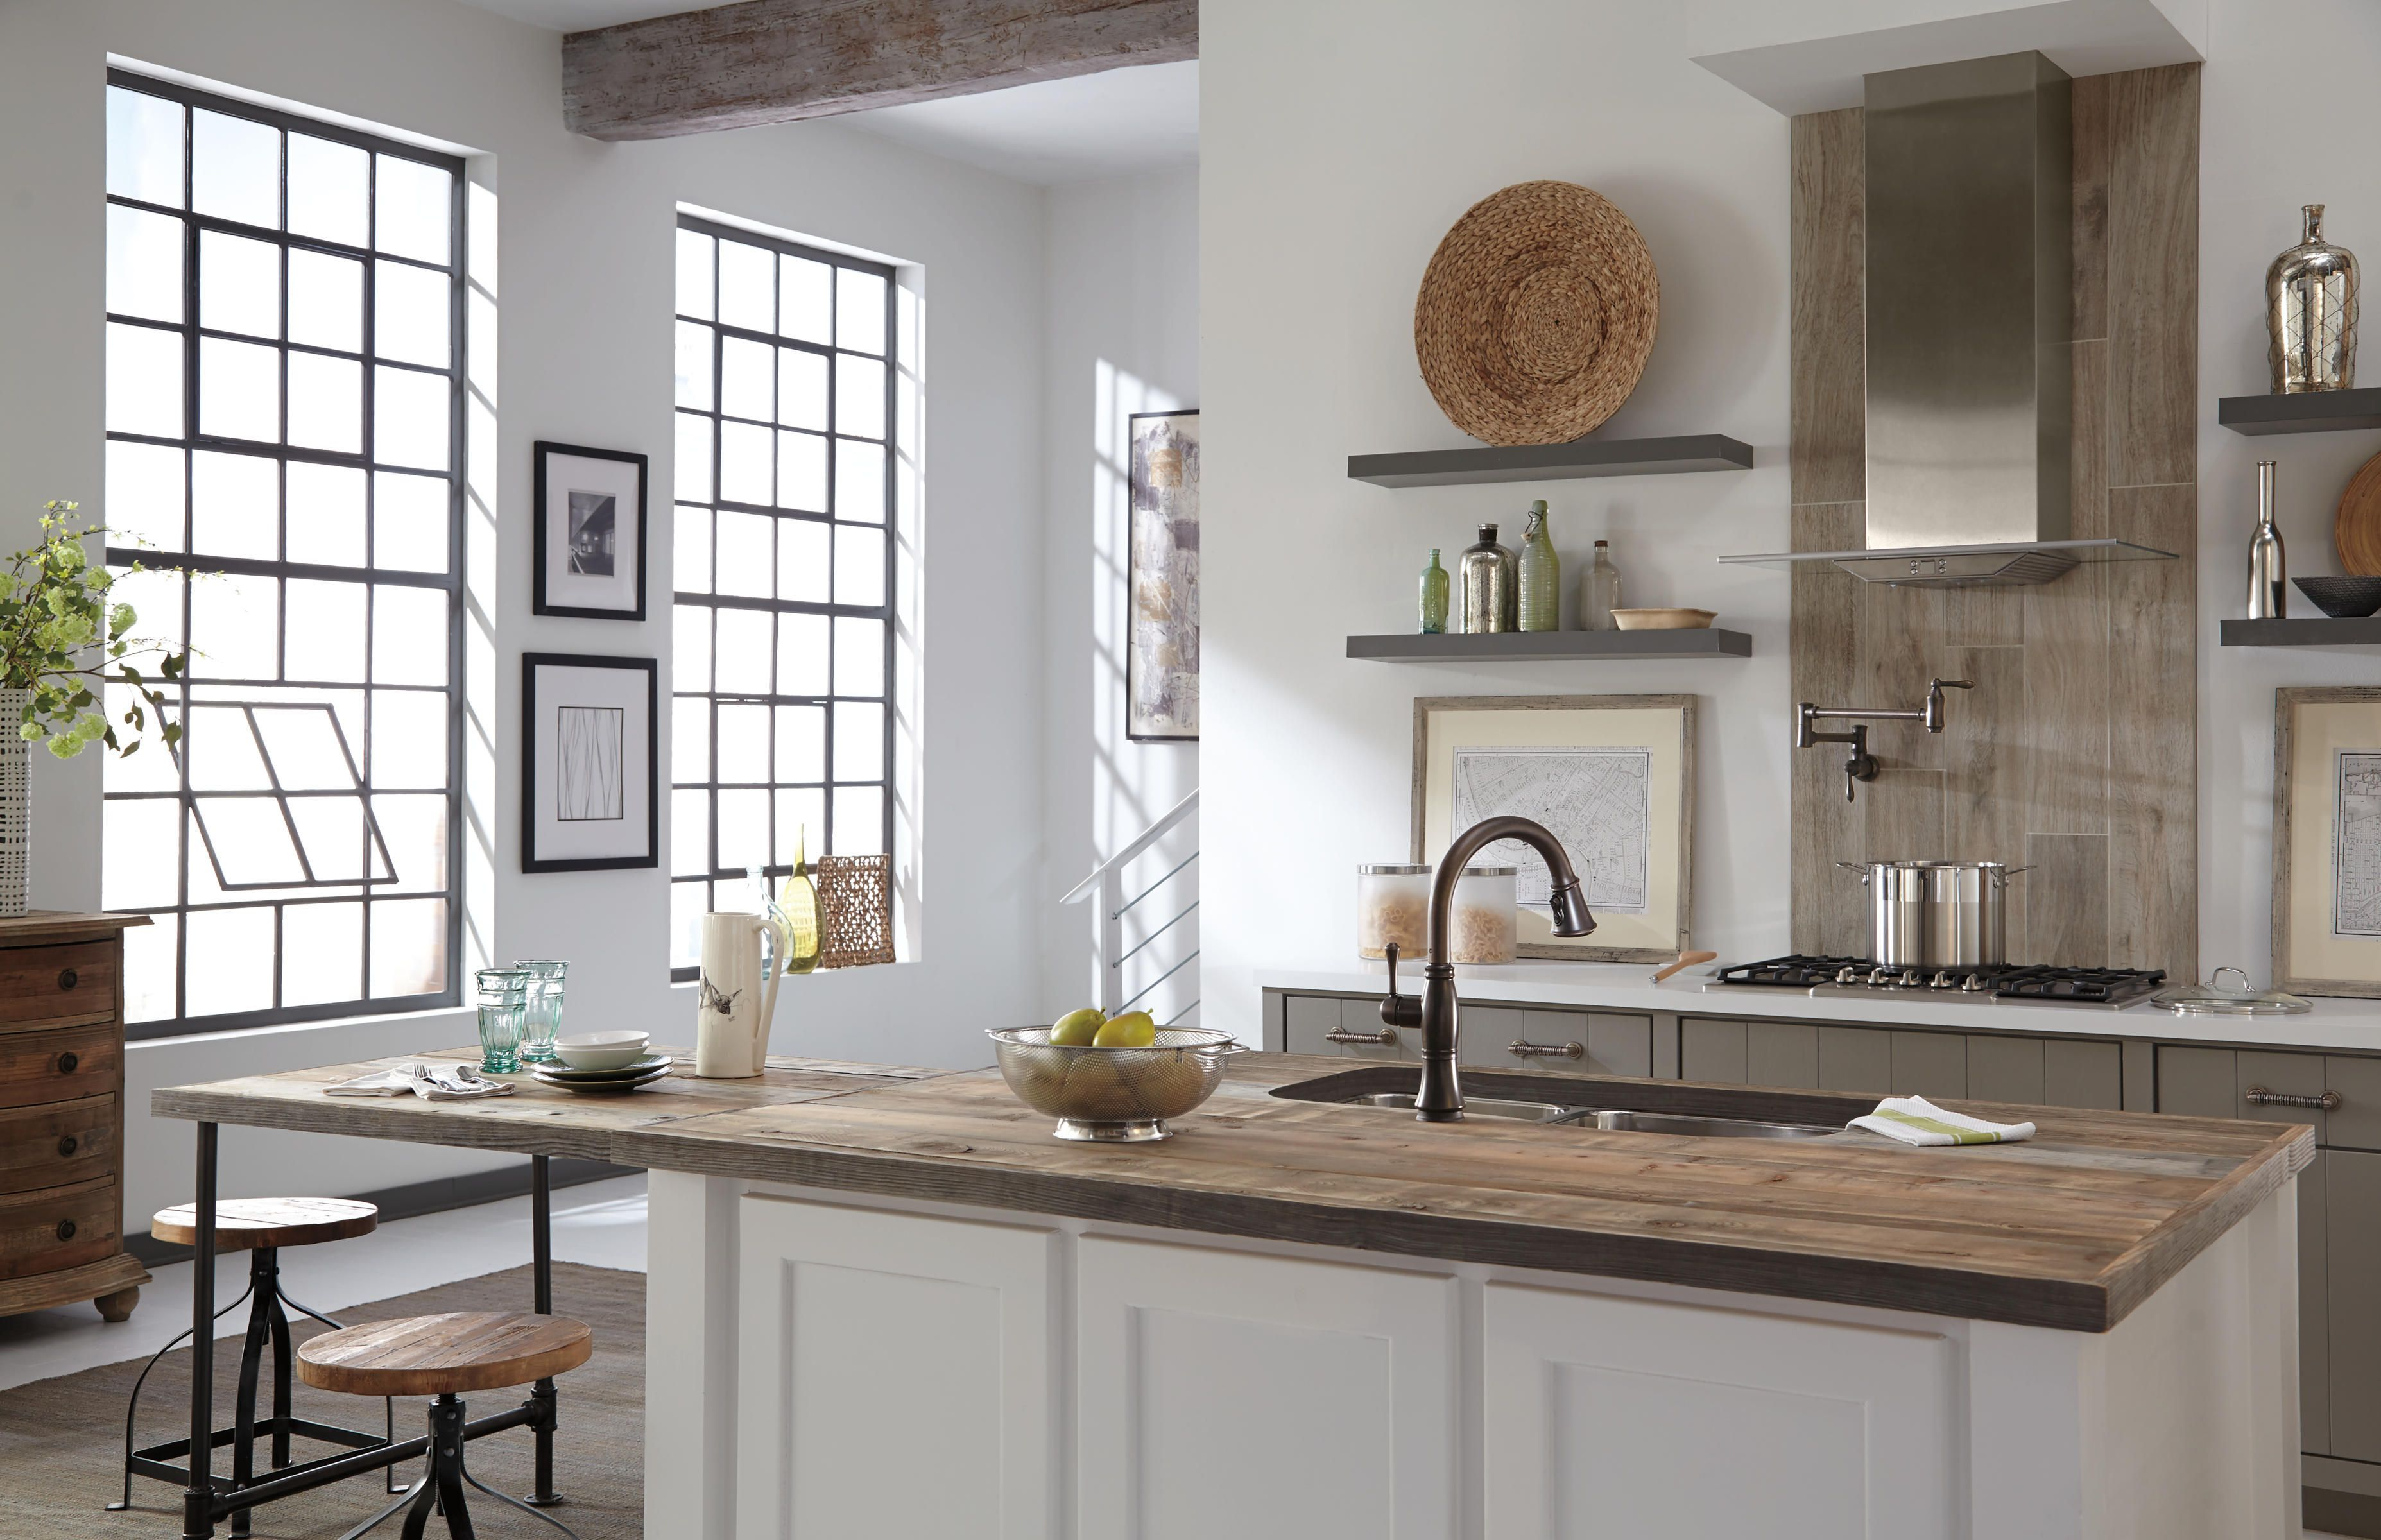 4 of 8 in 8 Ways to Refresh and Personalize Your Kitchen